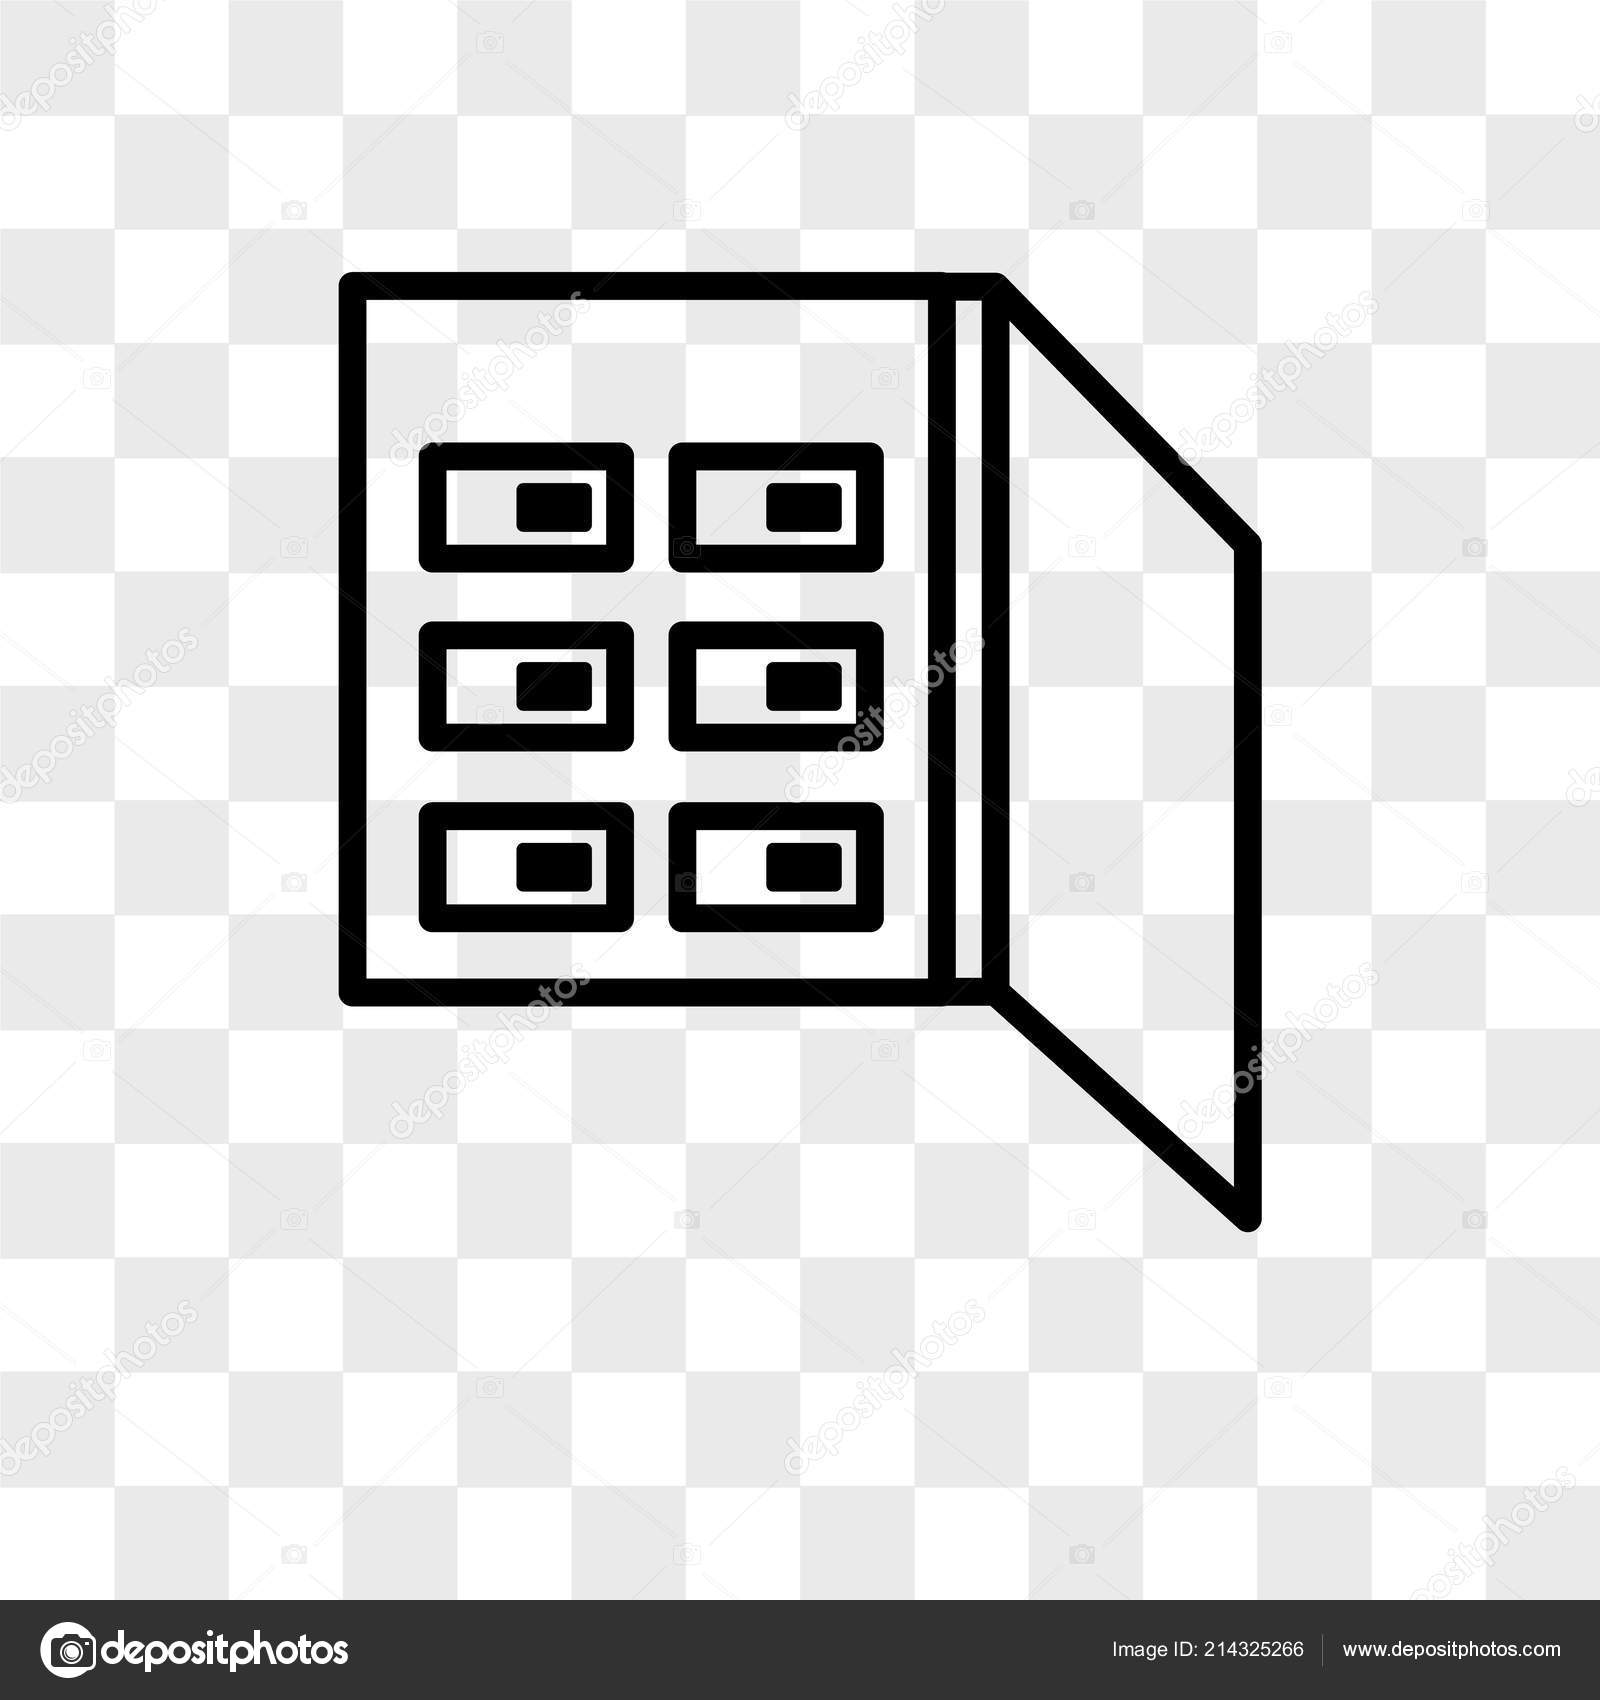 hight resolution of fuse box vector icon isolated on transparent background fuse bo fuse box logo